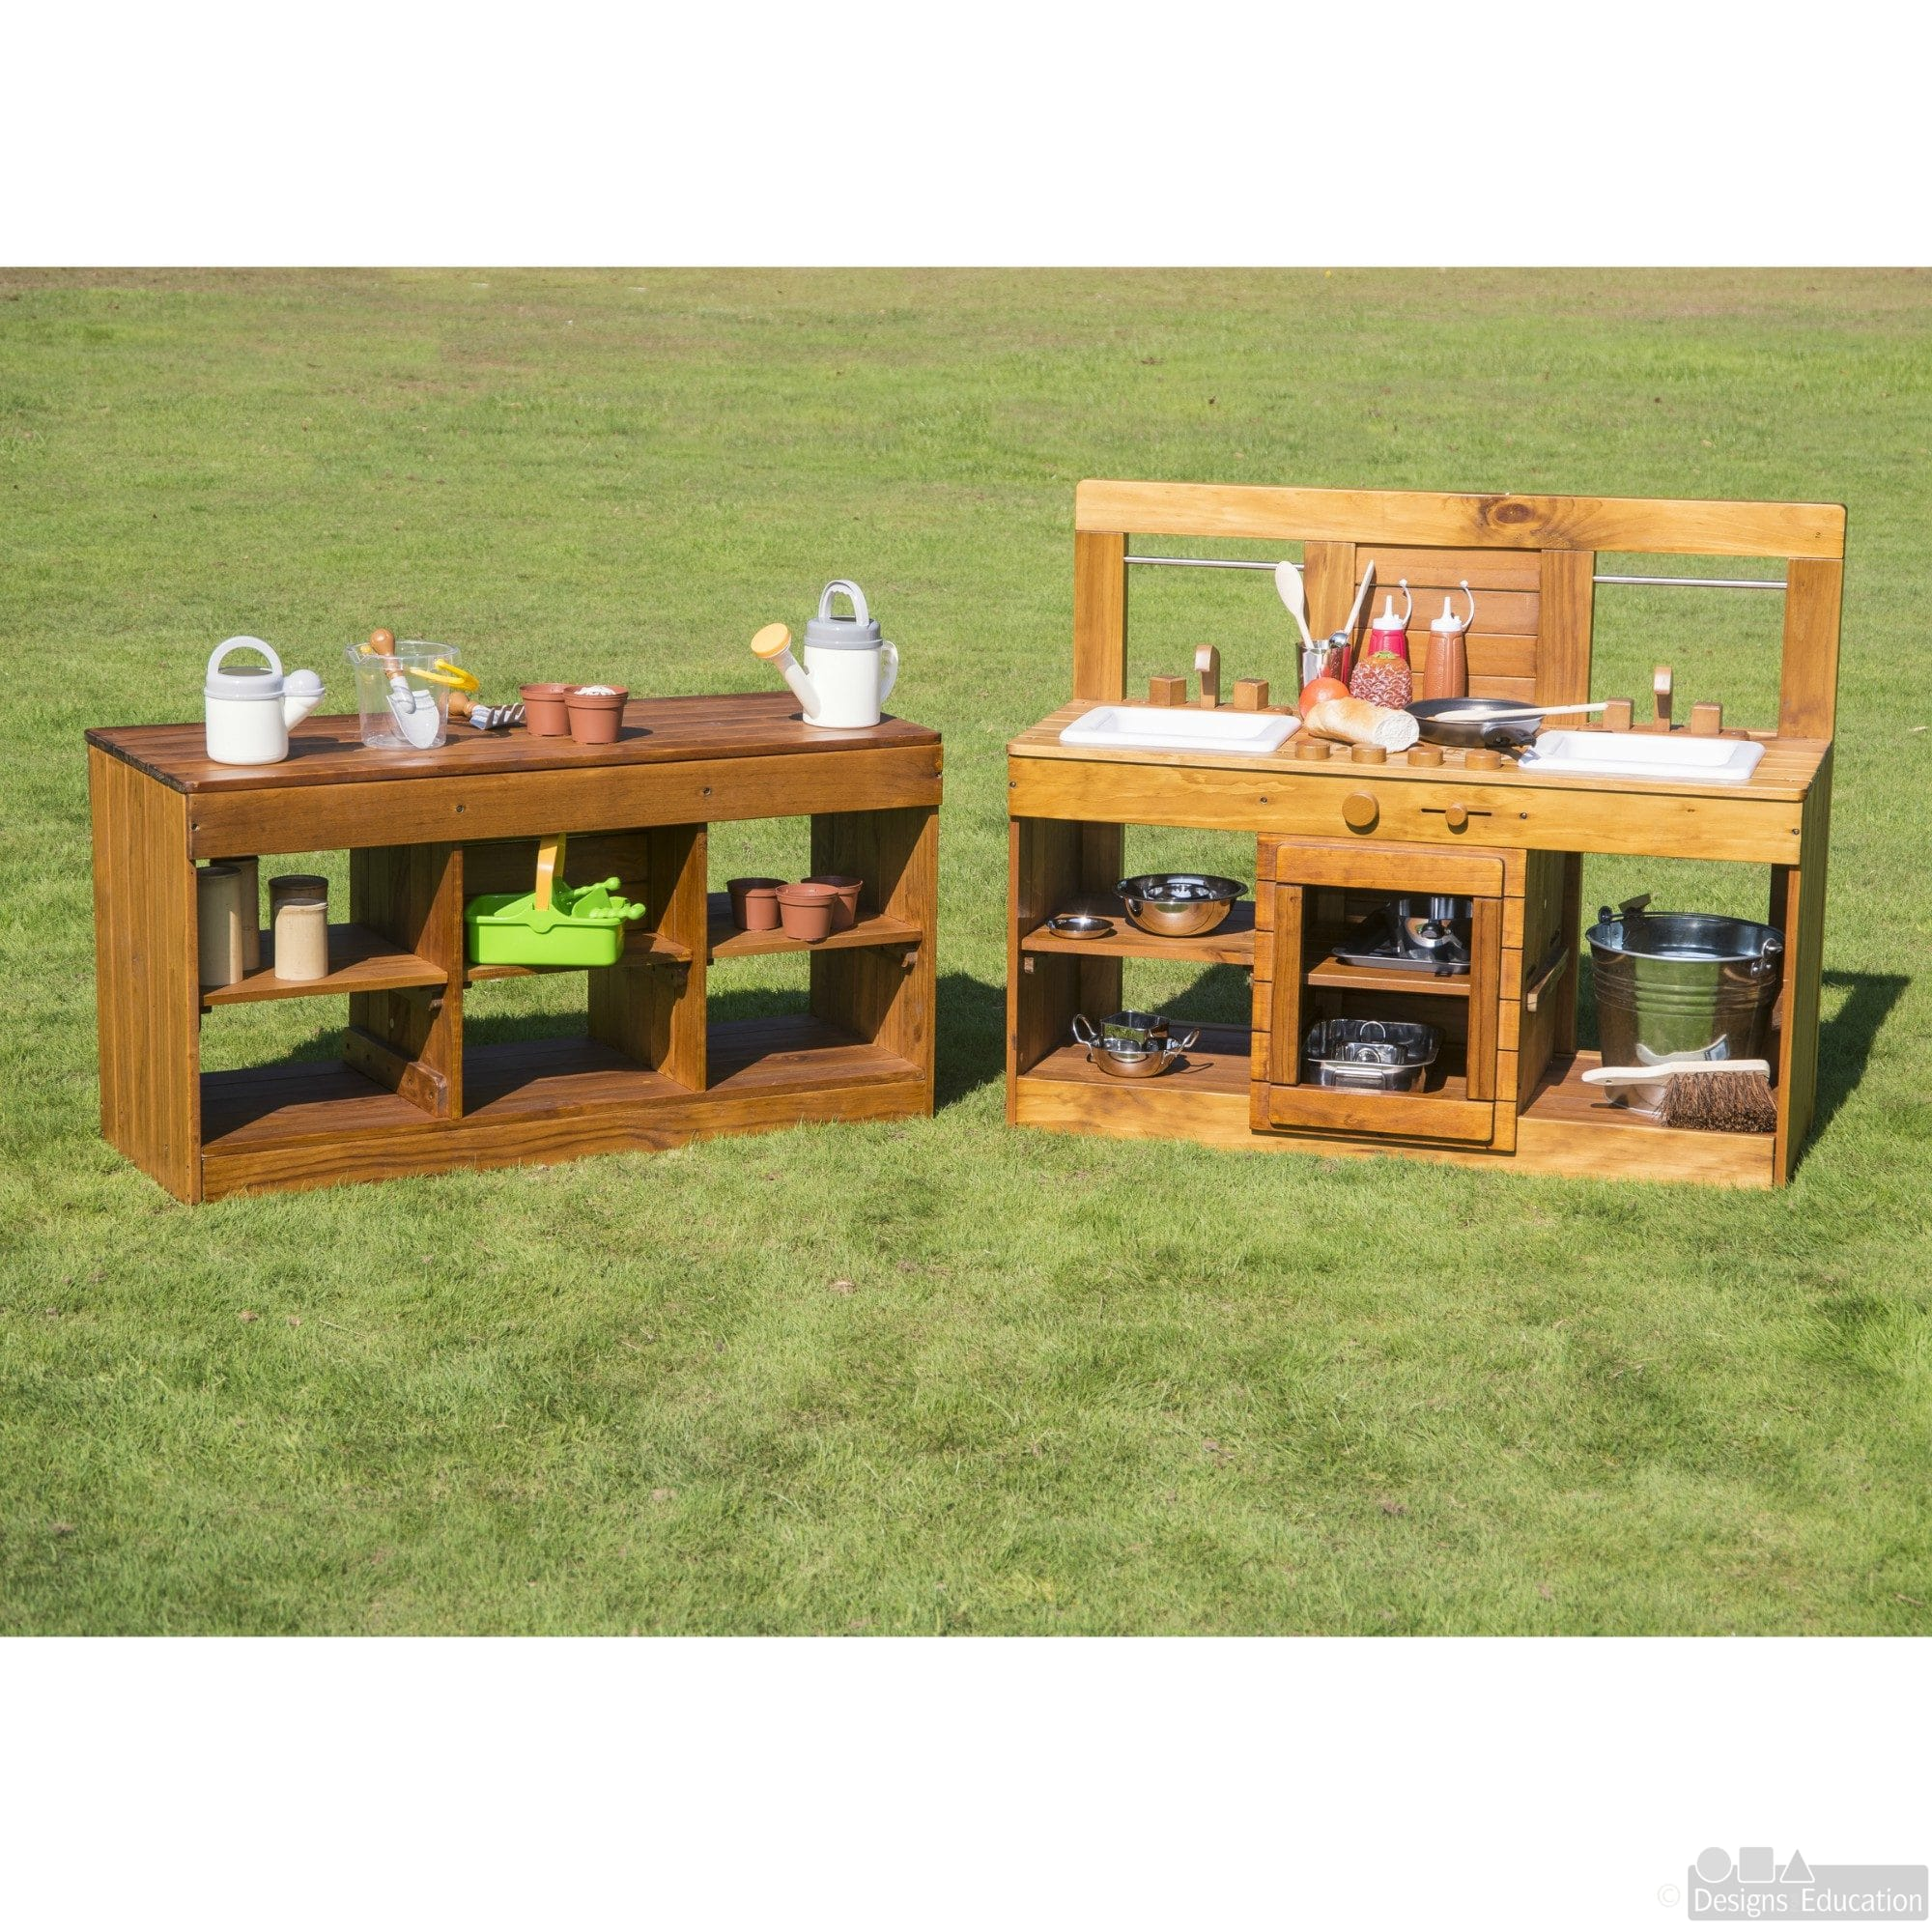 225 & Outdoor Kitchen - Designs For Education